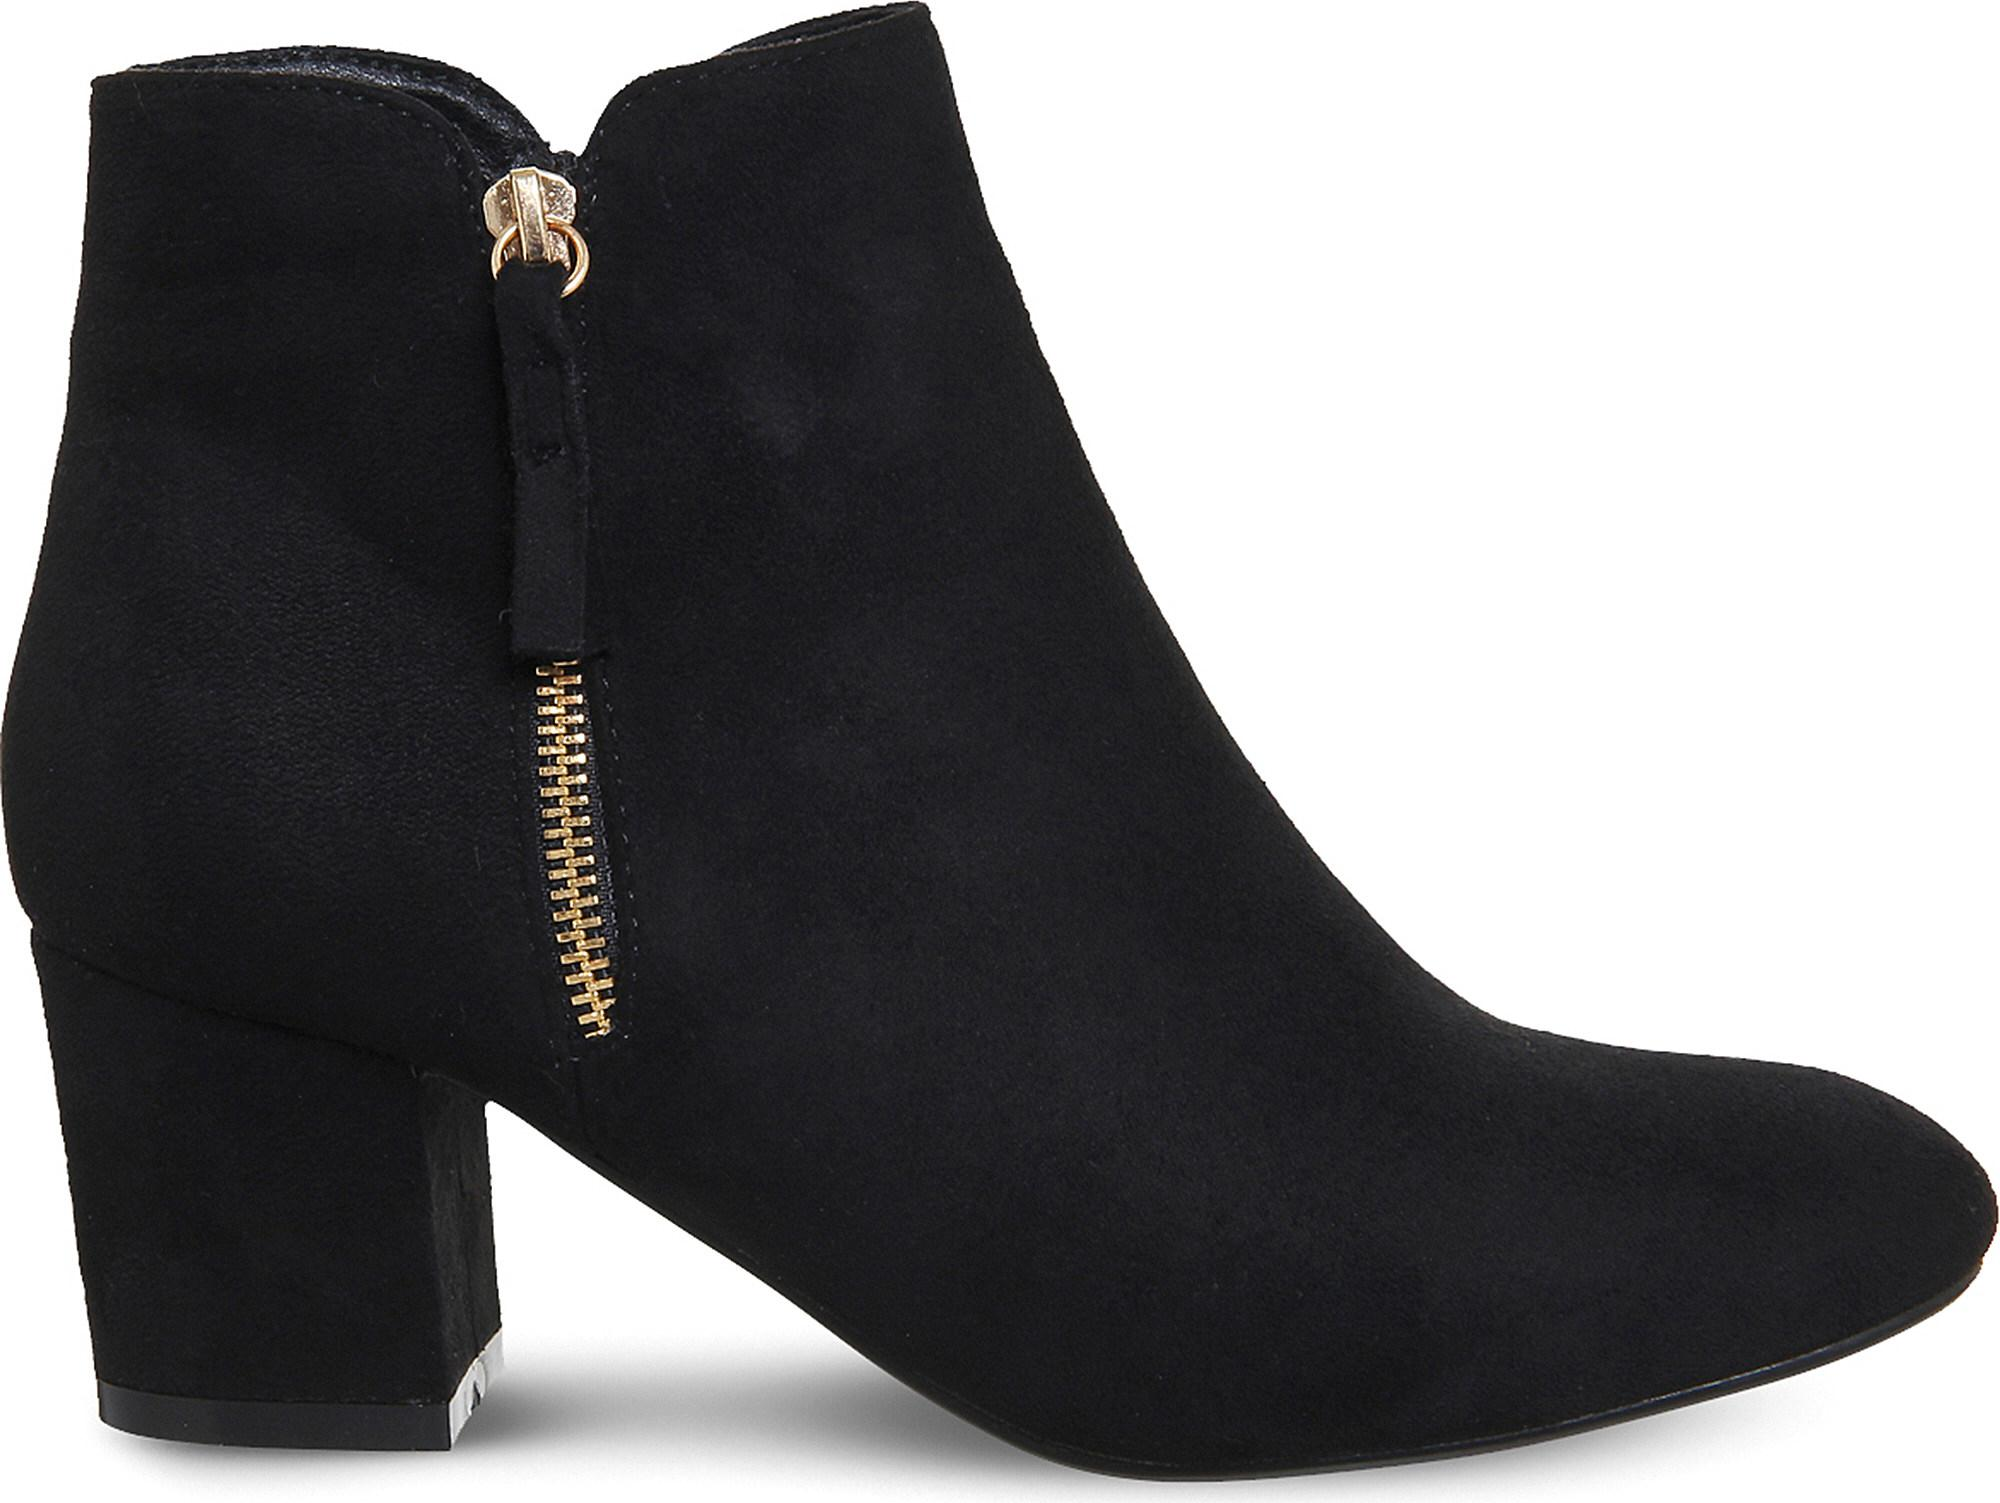 16239040369 Office Alicia Side-zip Ankle Boots in Black - Lyst